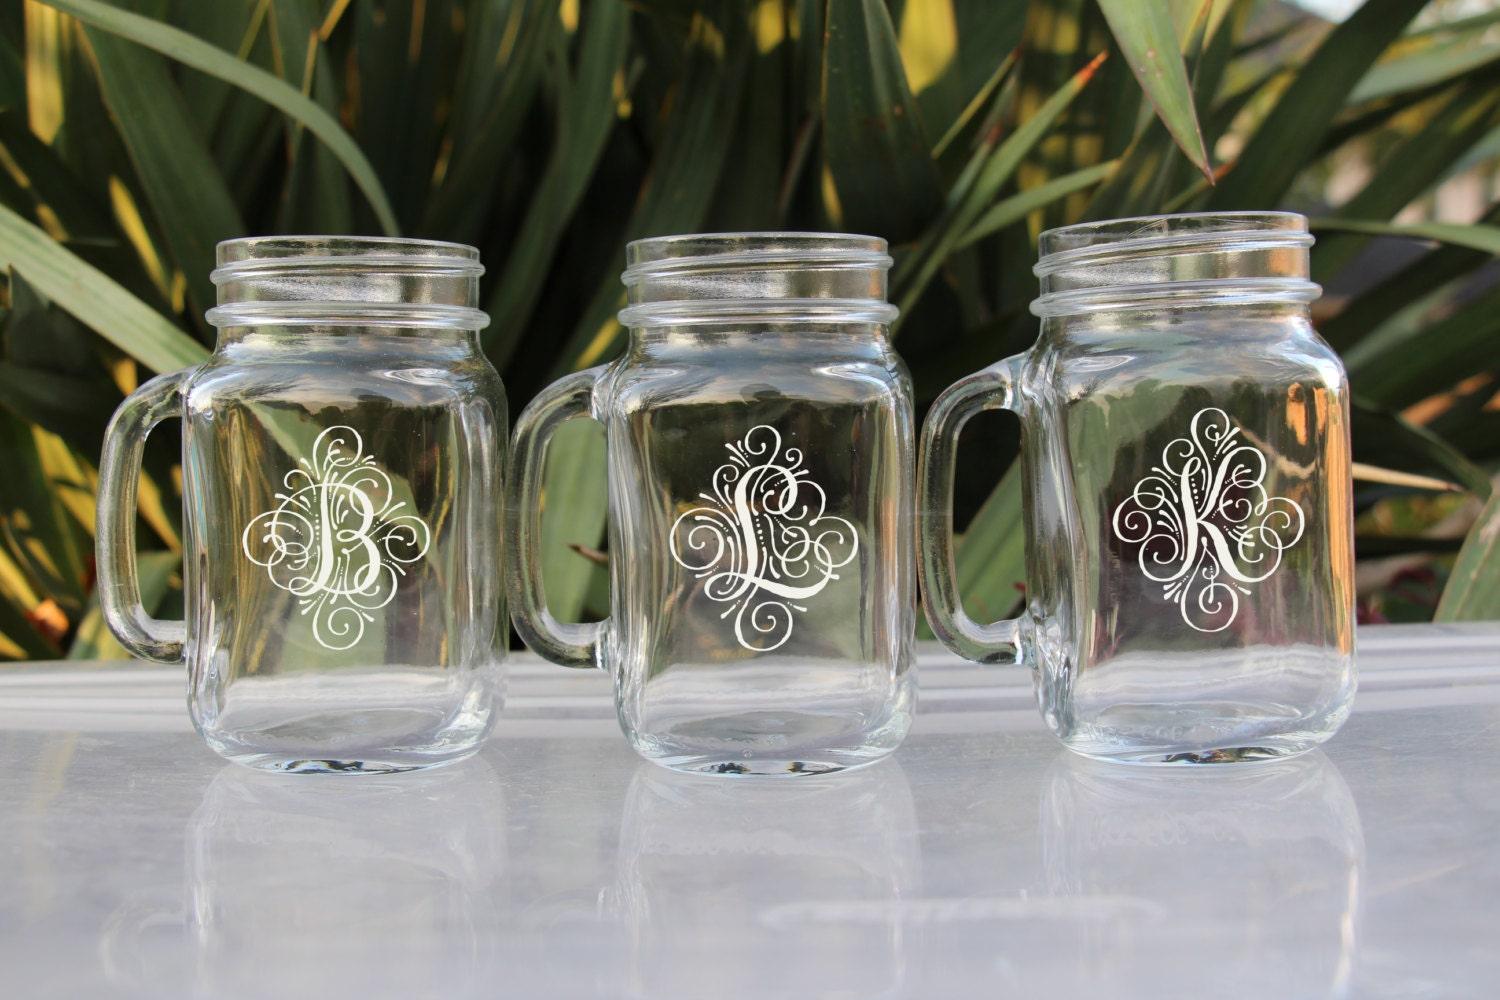 Wedding Gift Beer Mugs : Personalized Beer Mug Engraved Mason Jar Glasses with